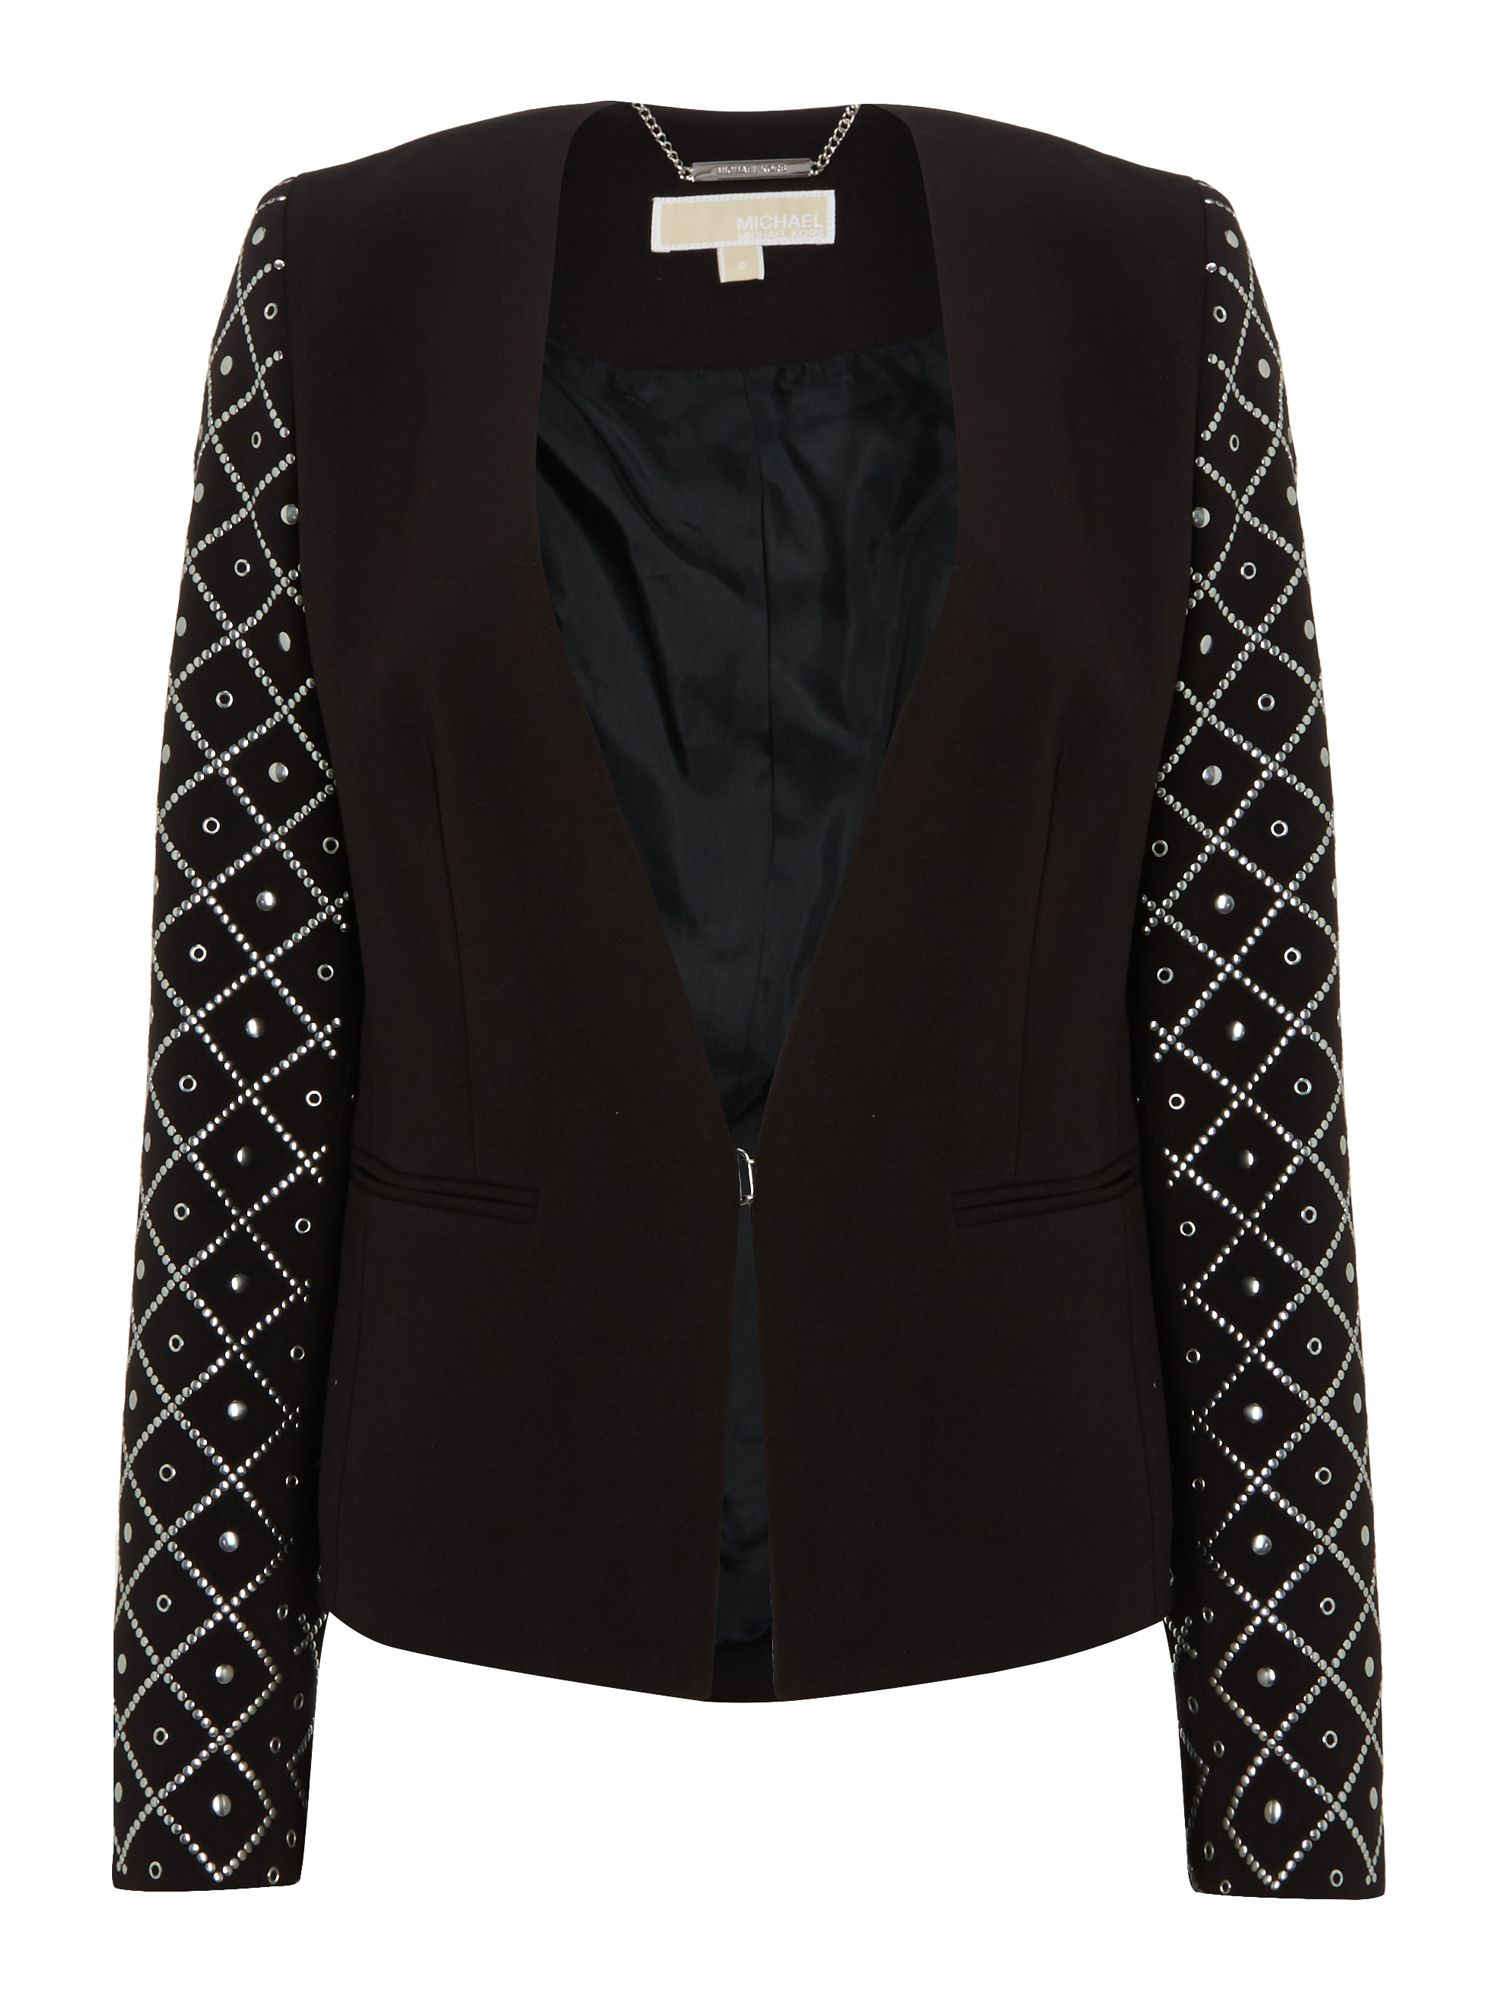 Long sleeved jacket with embroidered sleeves